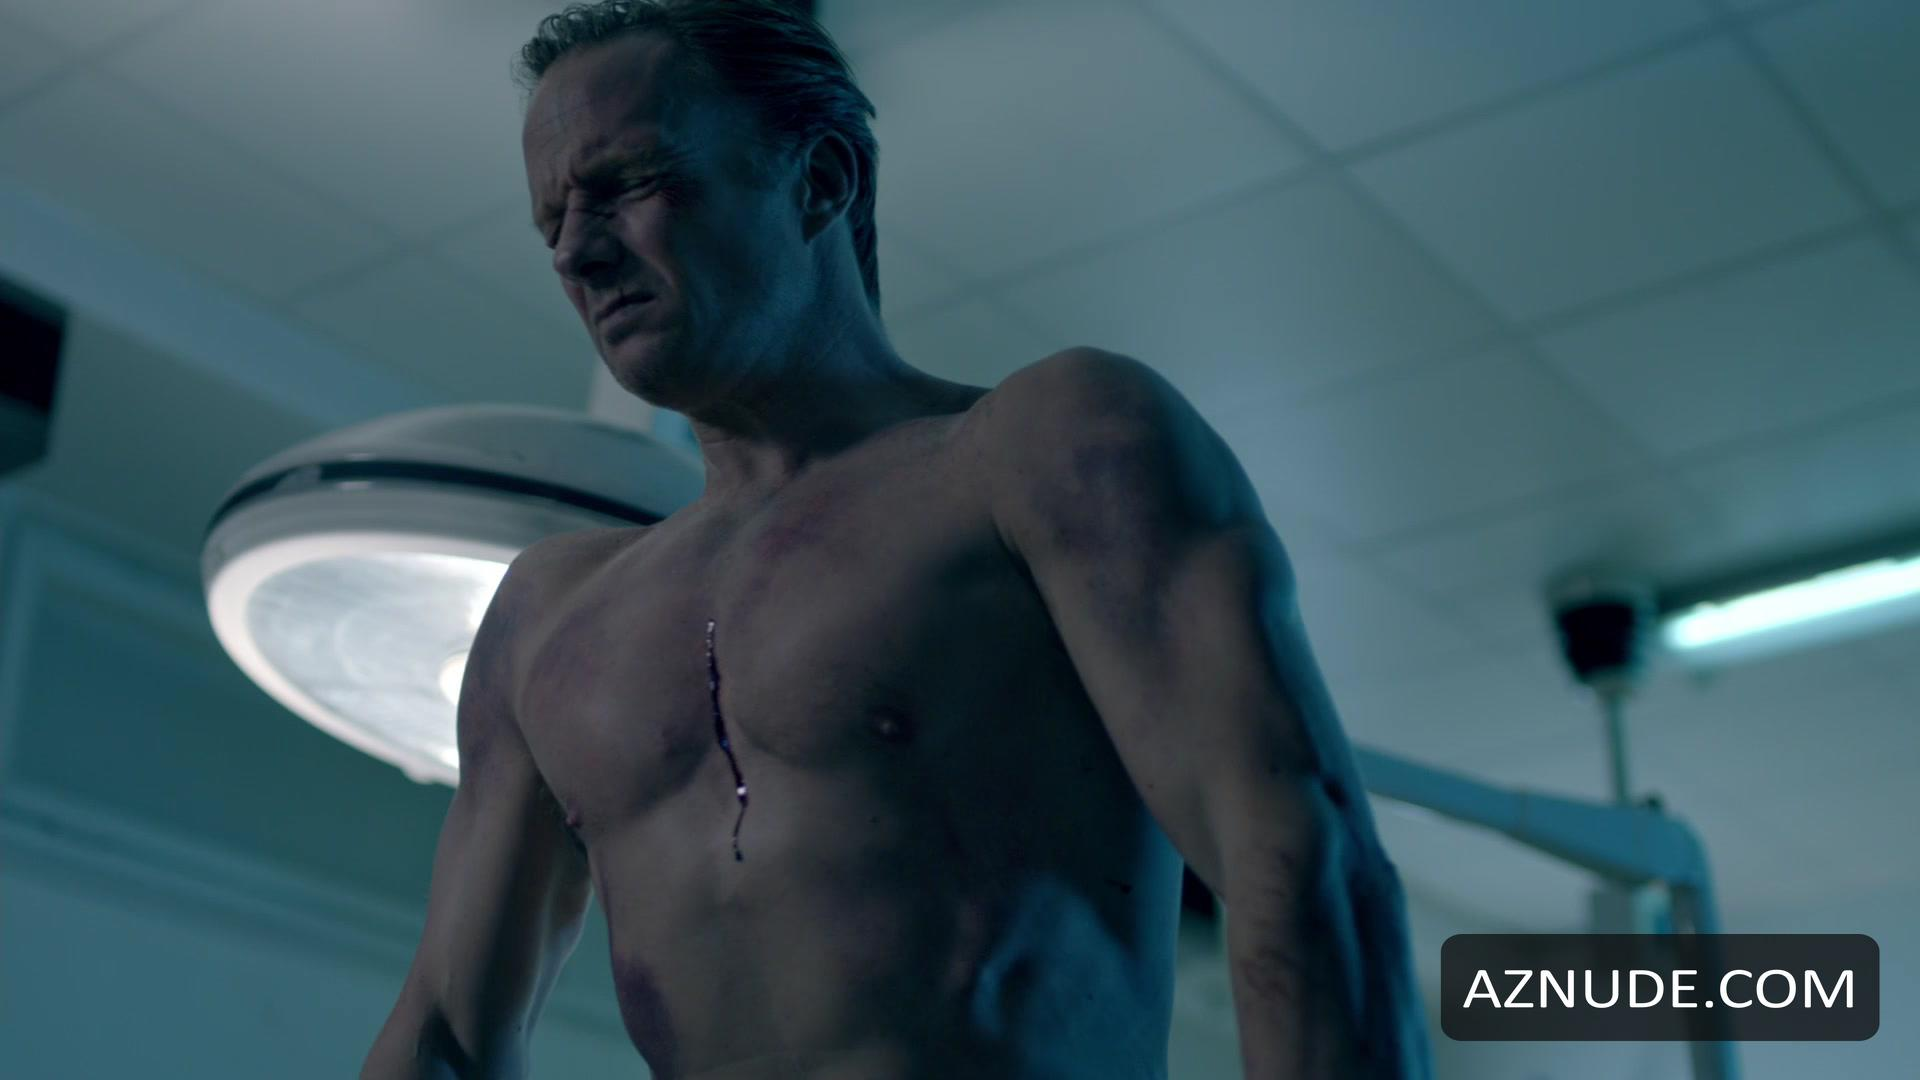 Naked pictures of rupert penry-jones